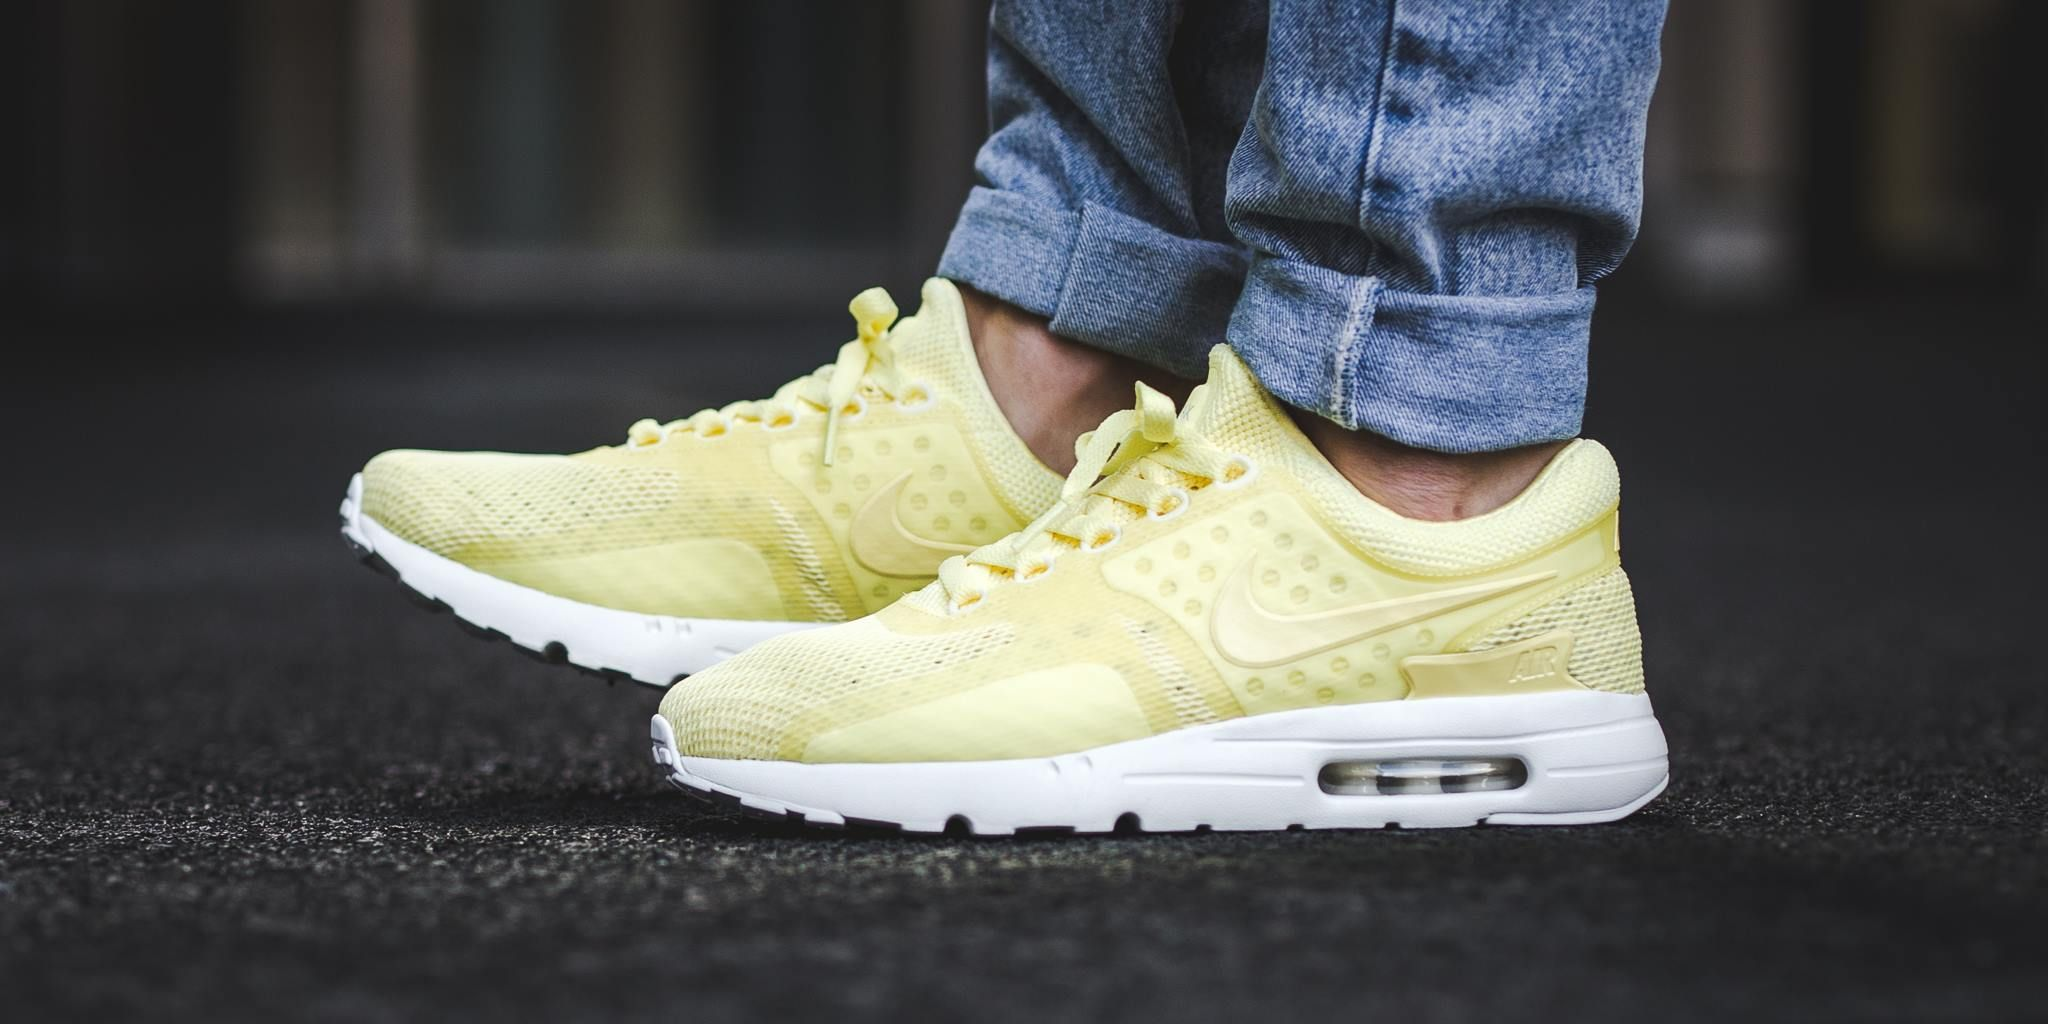 ac84f8c79c Nike Air Max Zero Breathe Lemon Chiffon/White/Light Bone Womens Buy Online